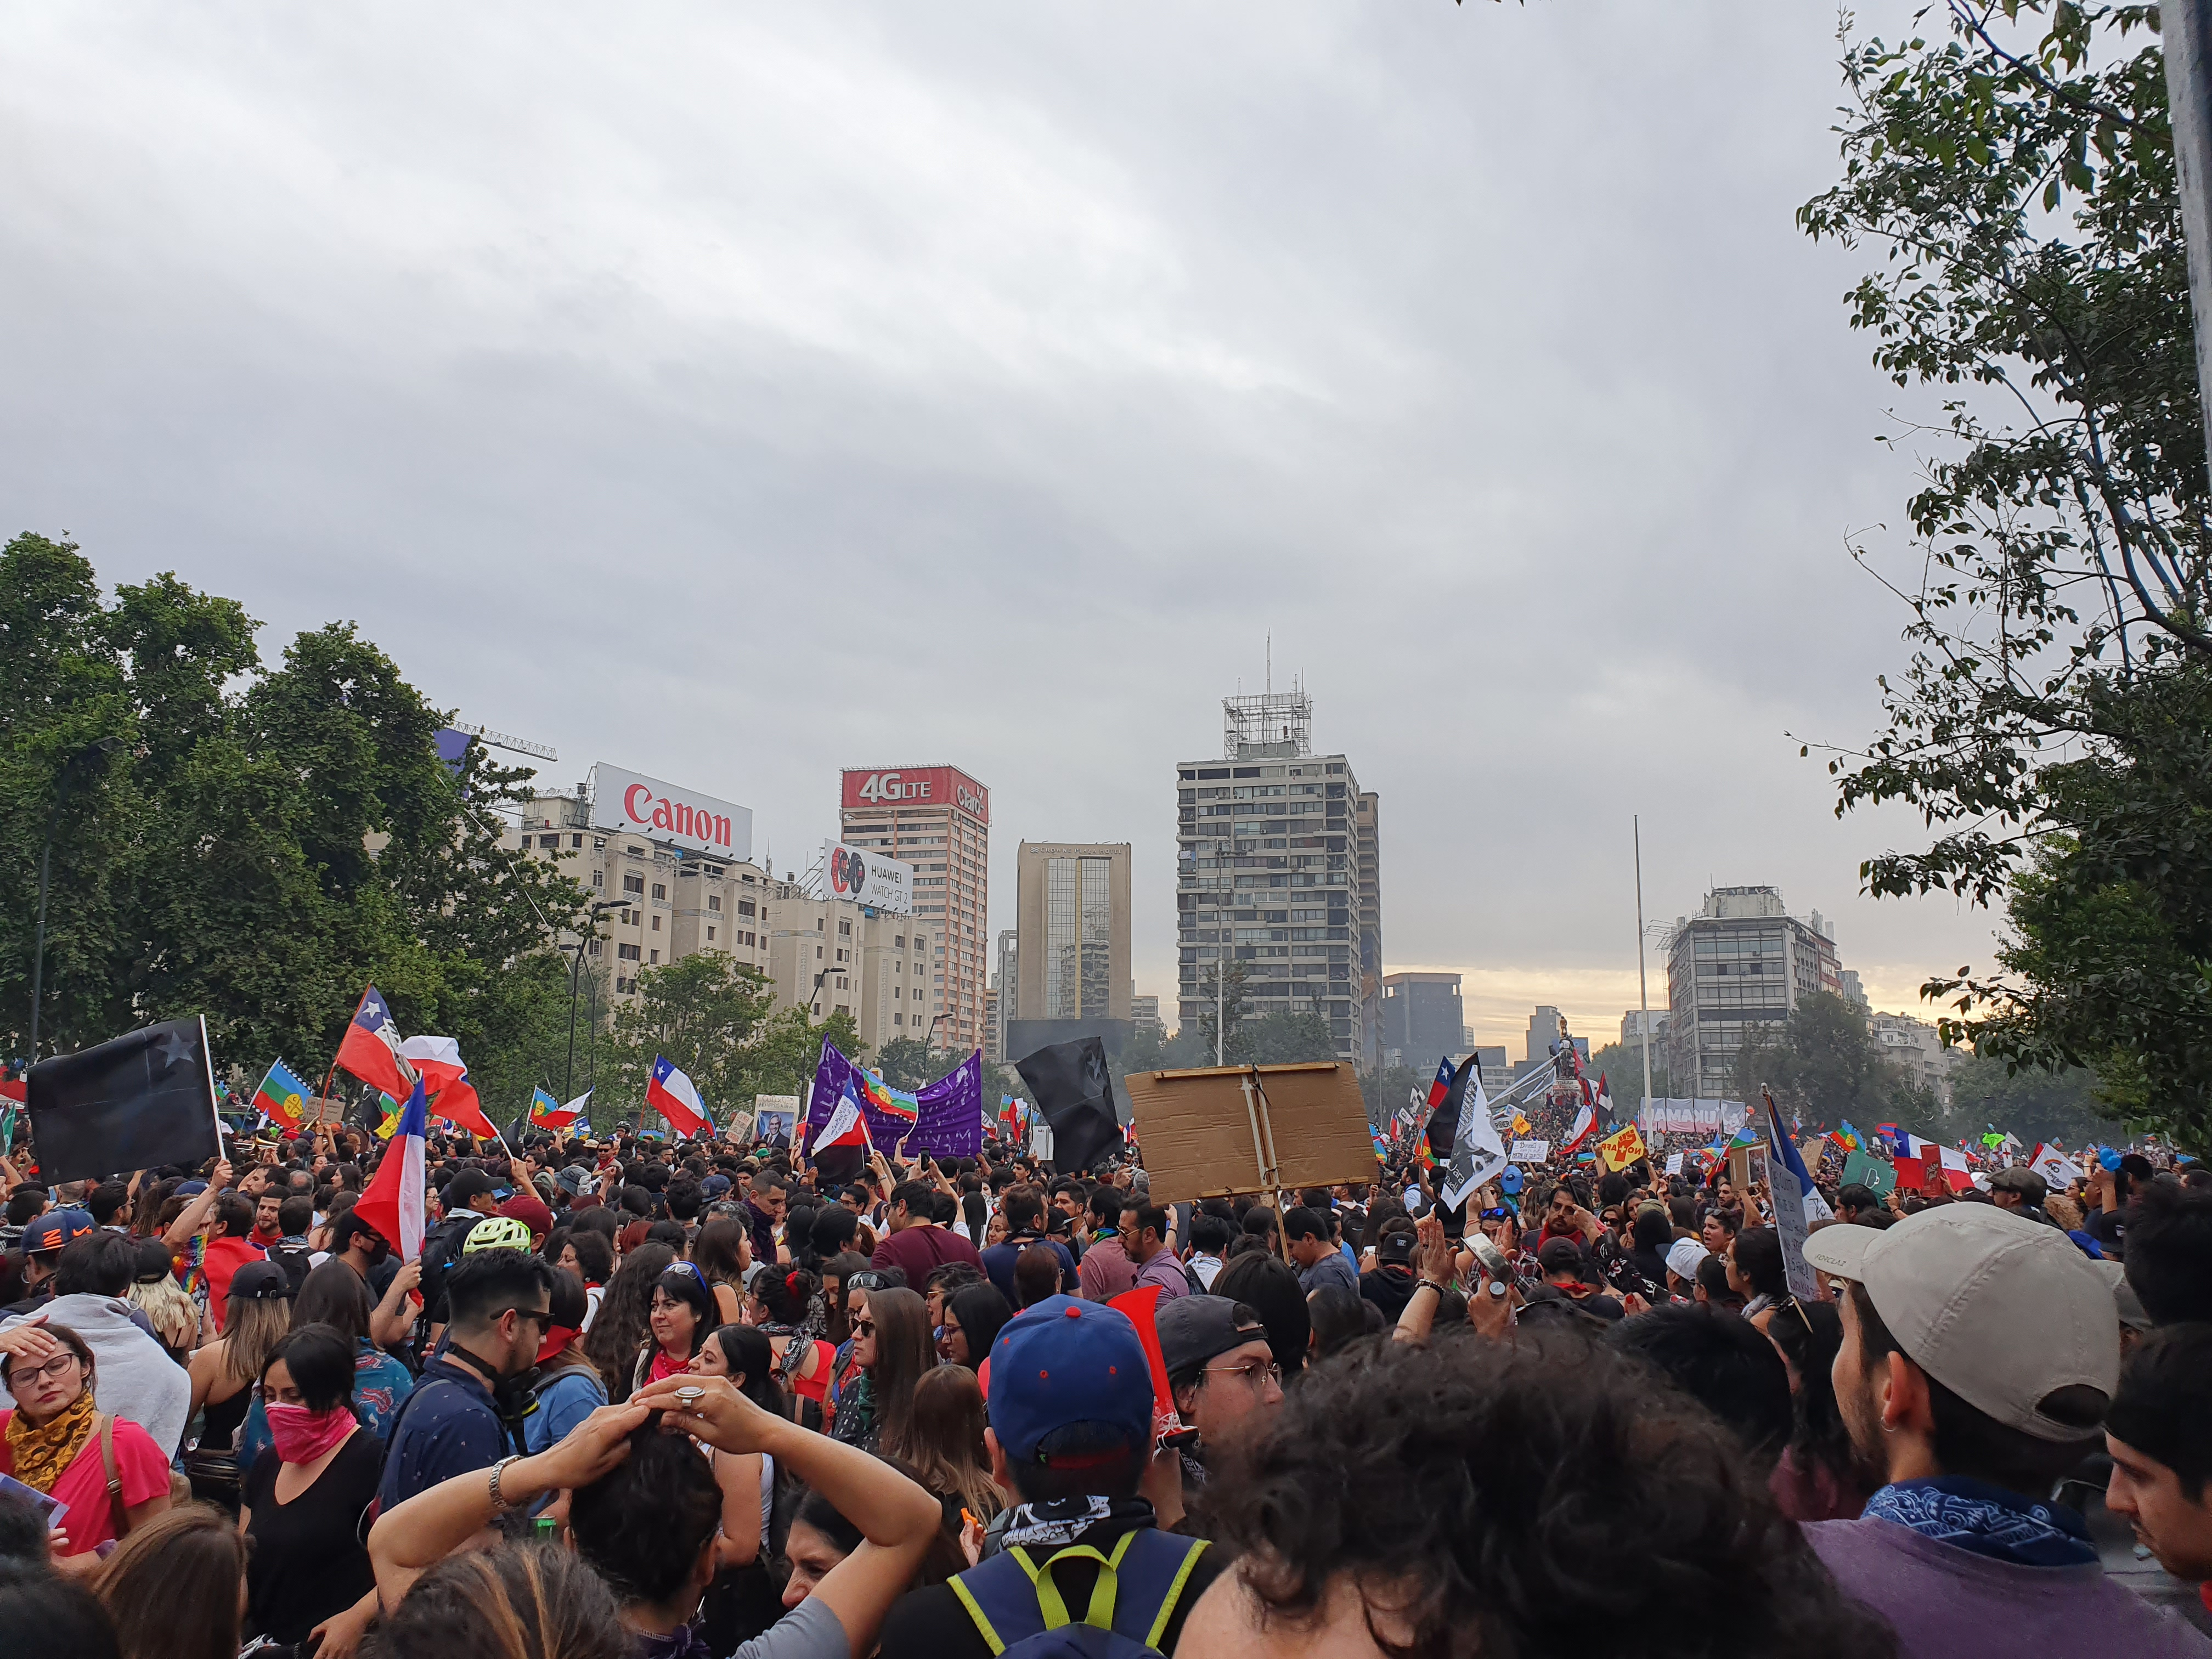 Demonstration in Santiago de Chile, 08.12.2019 (Foto: B1mbo, commons.wikimedia.org)